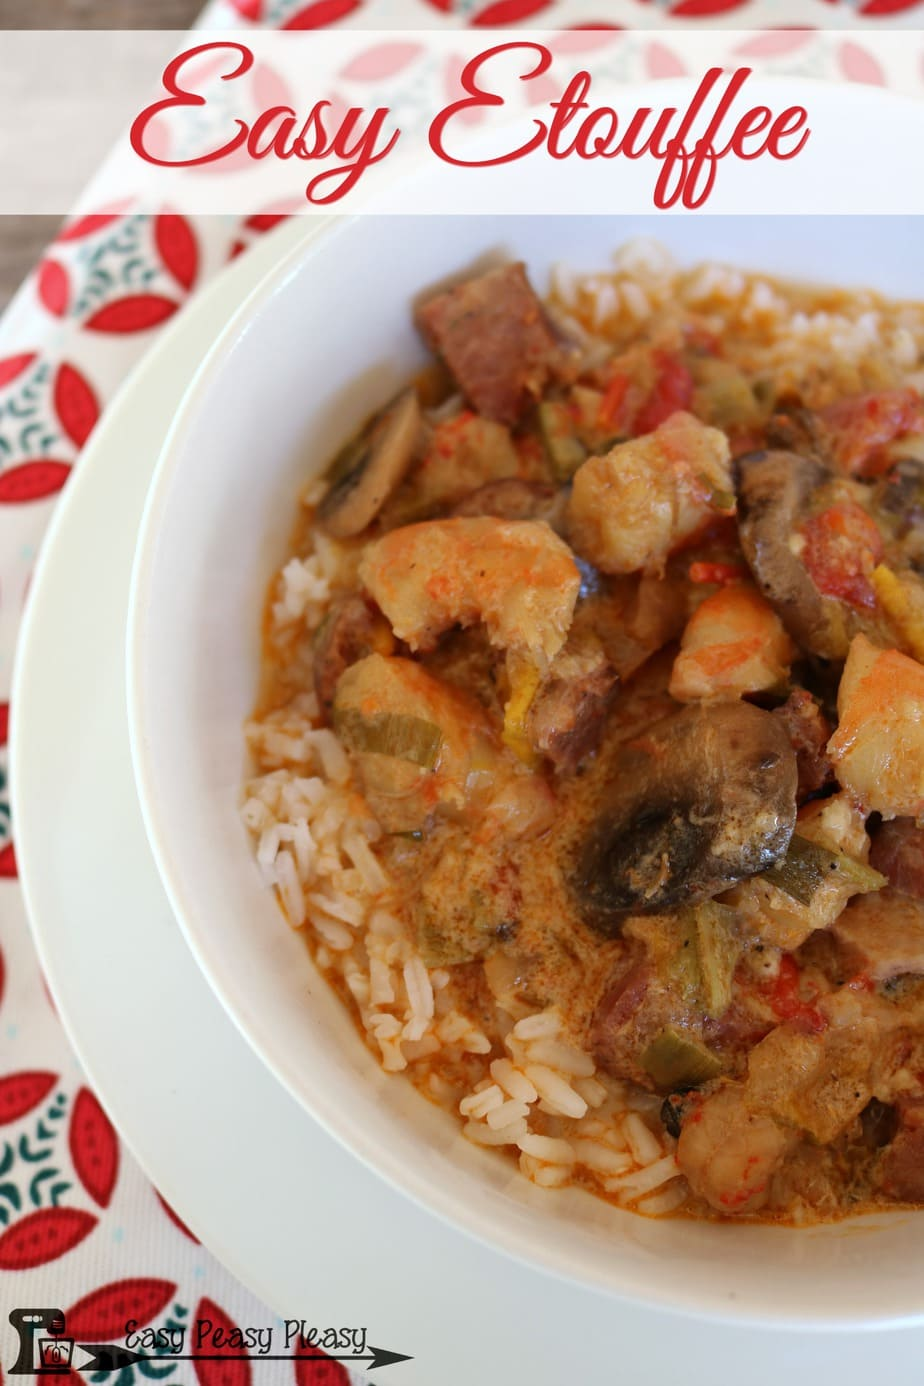 Make this deliciously easy and hearty Etouffee using simple ingredients.